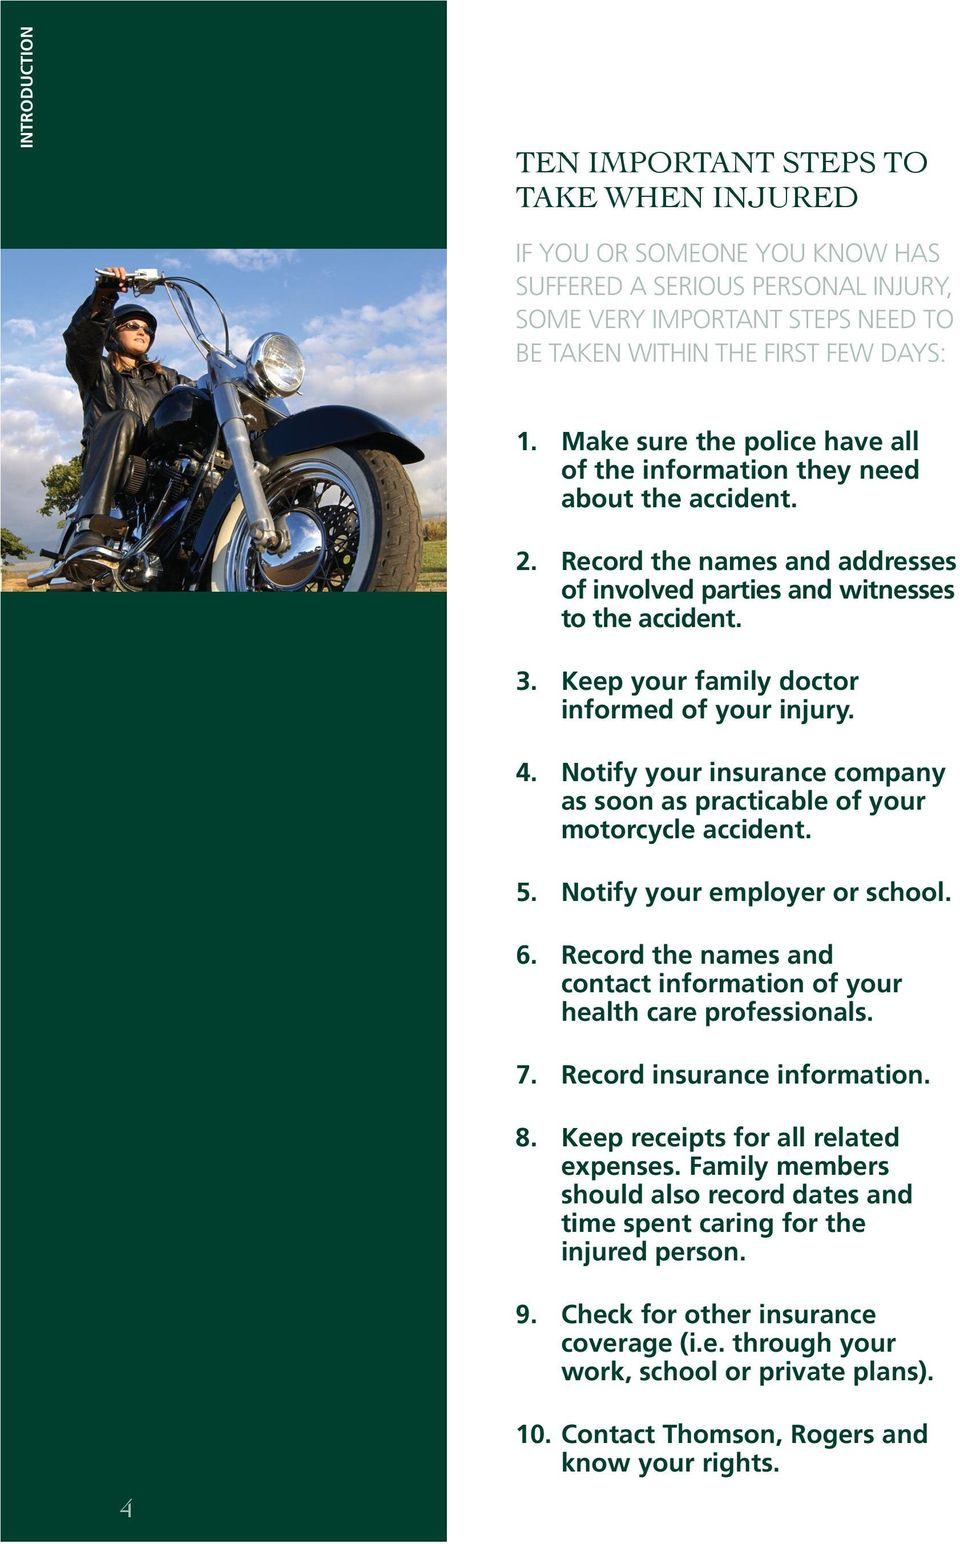 Keep your family doctor informed of your injury. 4. Notify your insurance company as soon as practicable of your motorcycle accident. 5. Notify your employer or school. 6.